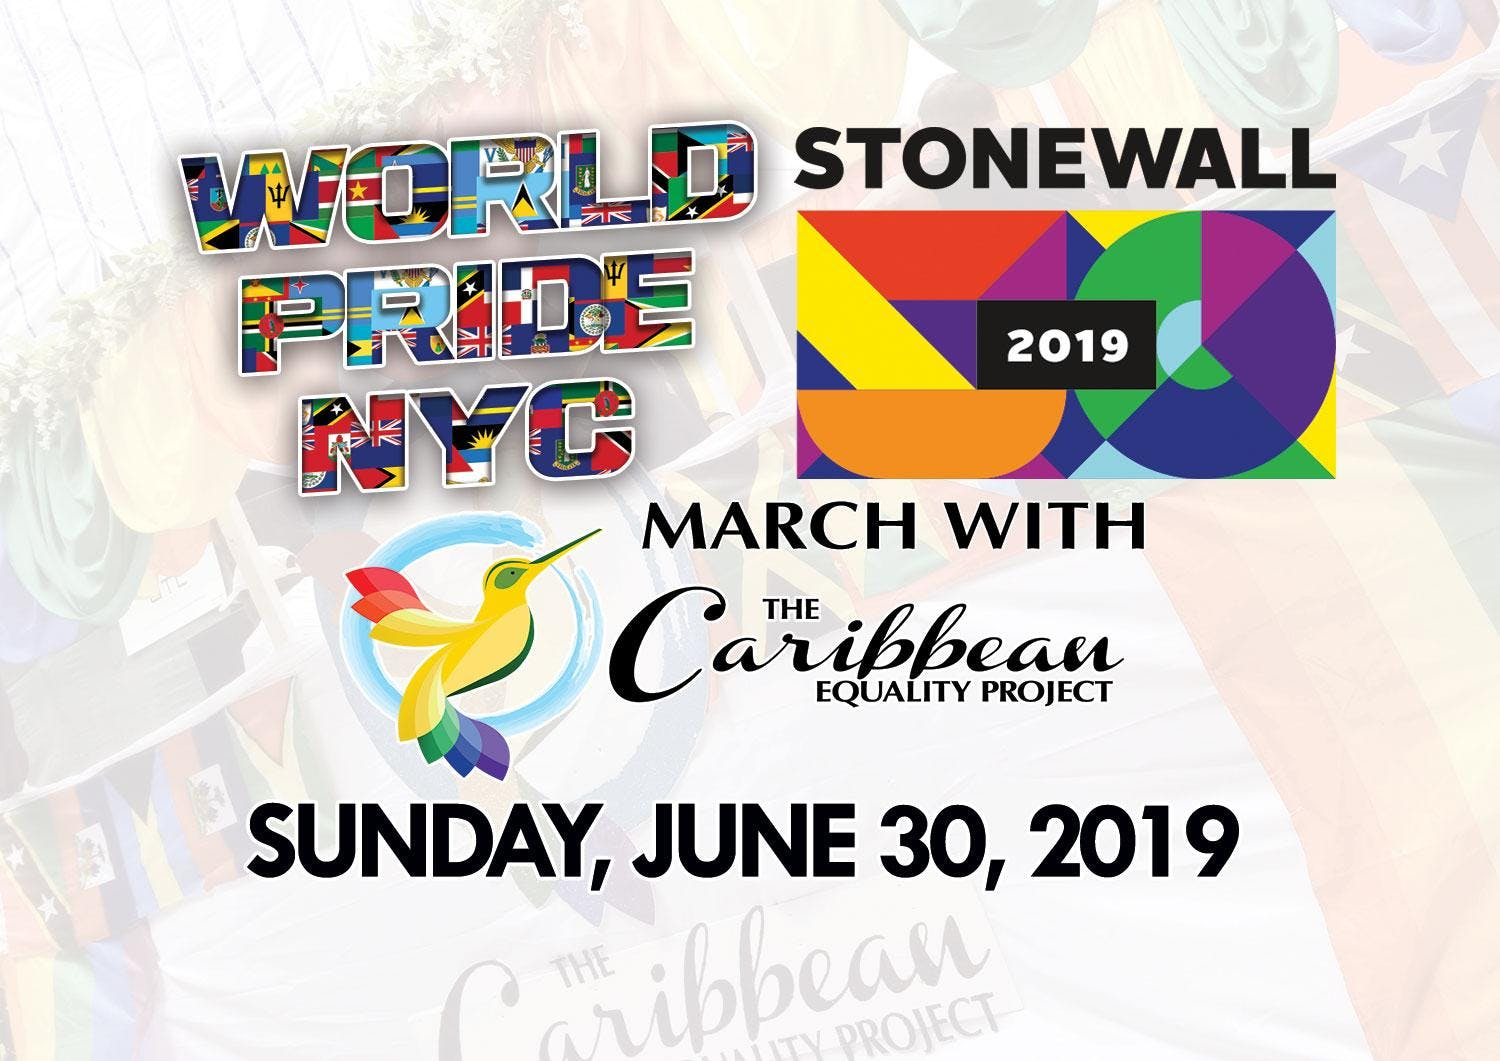 NYC WorldPride 2019 - March with Caribbean Equality Project